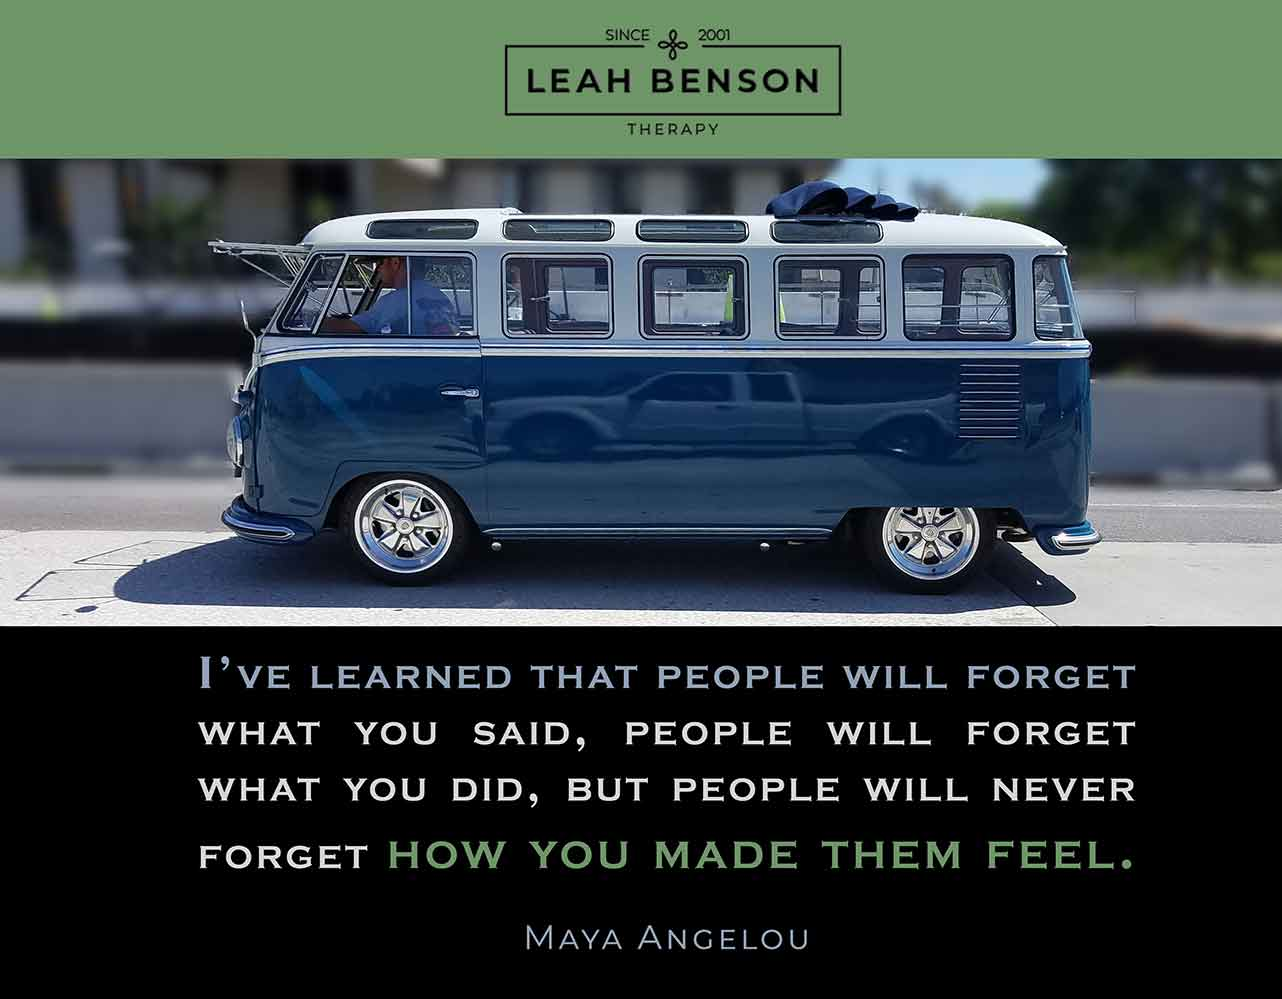 """I've learned that people will forget what you said, people will forget what you did, but people will never forget how you made them feel."" Quote by Maya Angelou. Photo of custom blue VW van. Leah Benson Therapy logo."